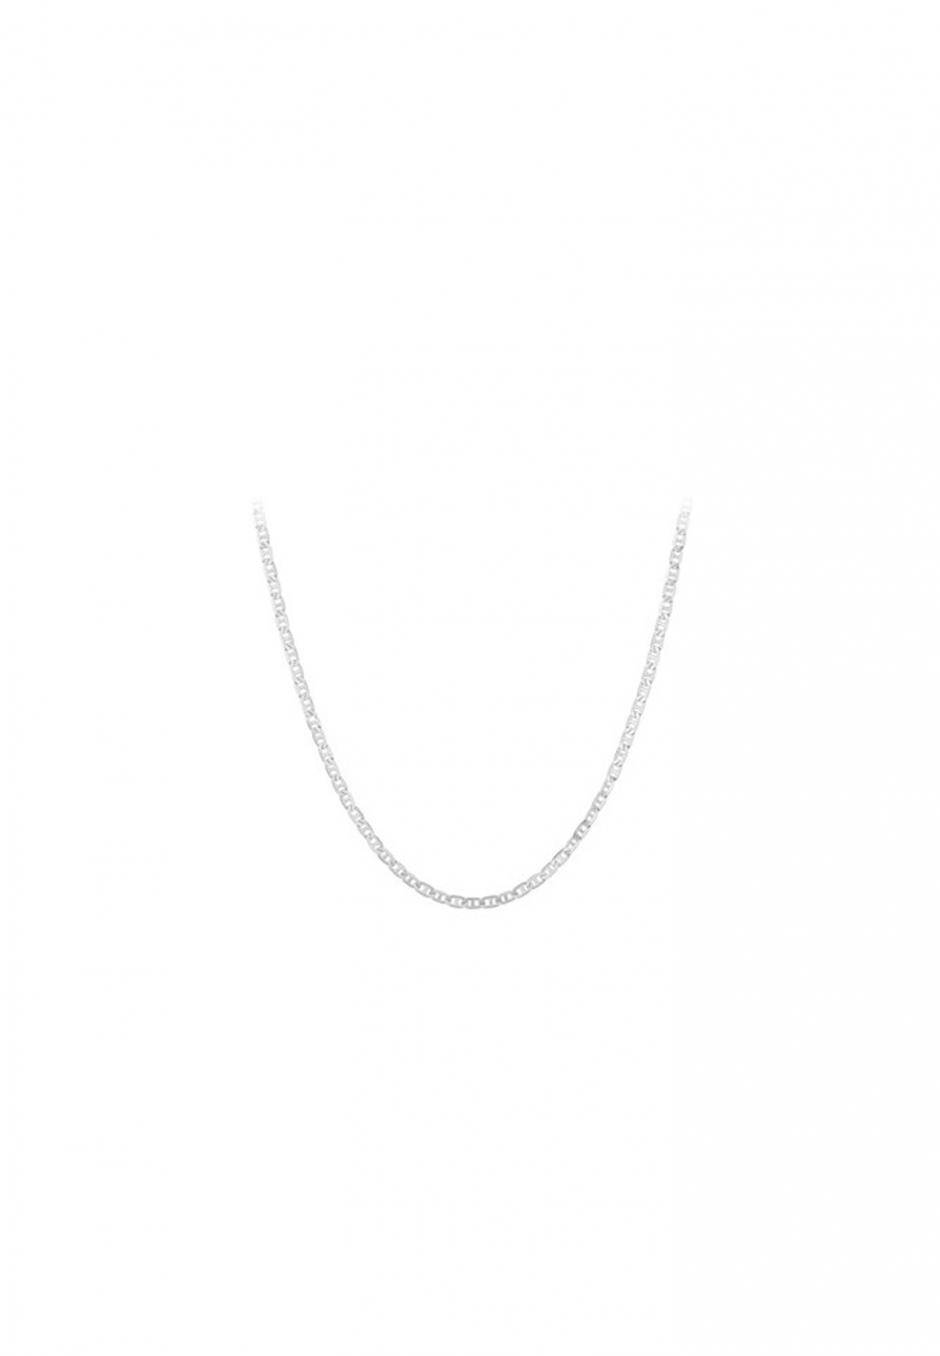 Pernille Corydon Therese Necklace silver